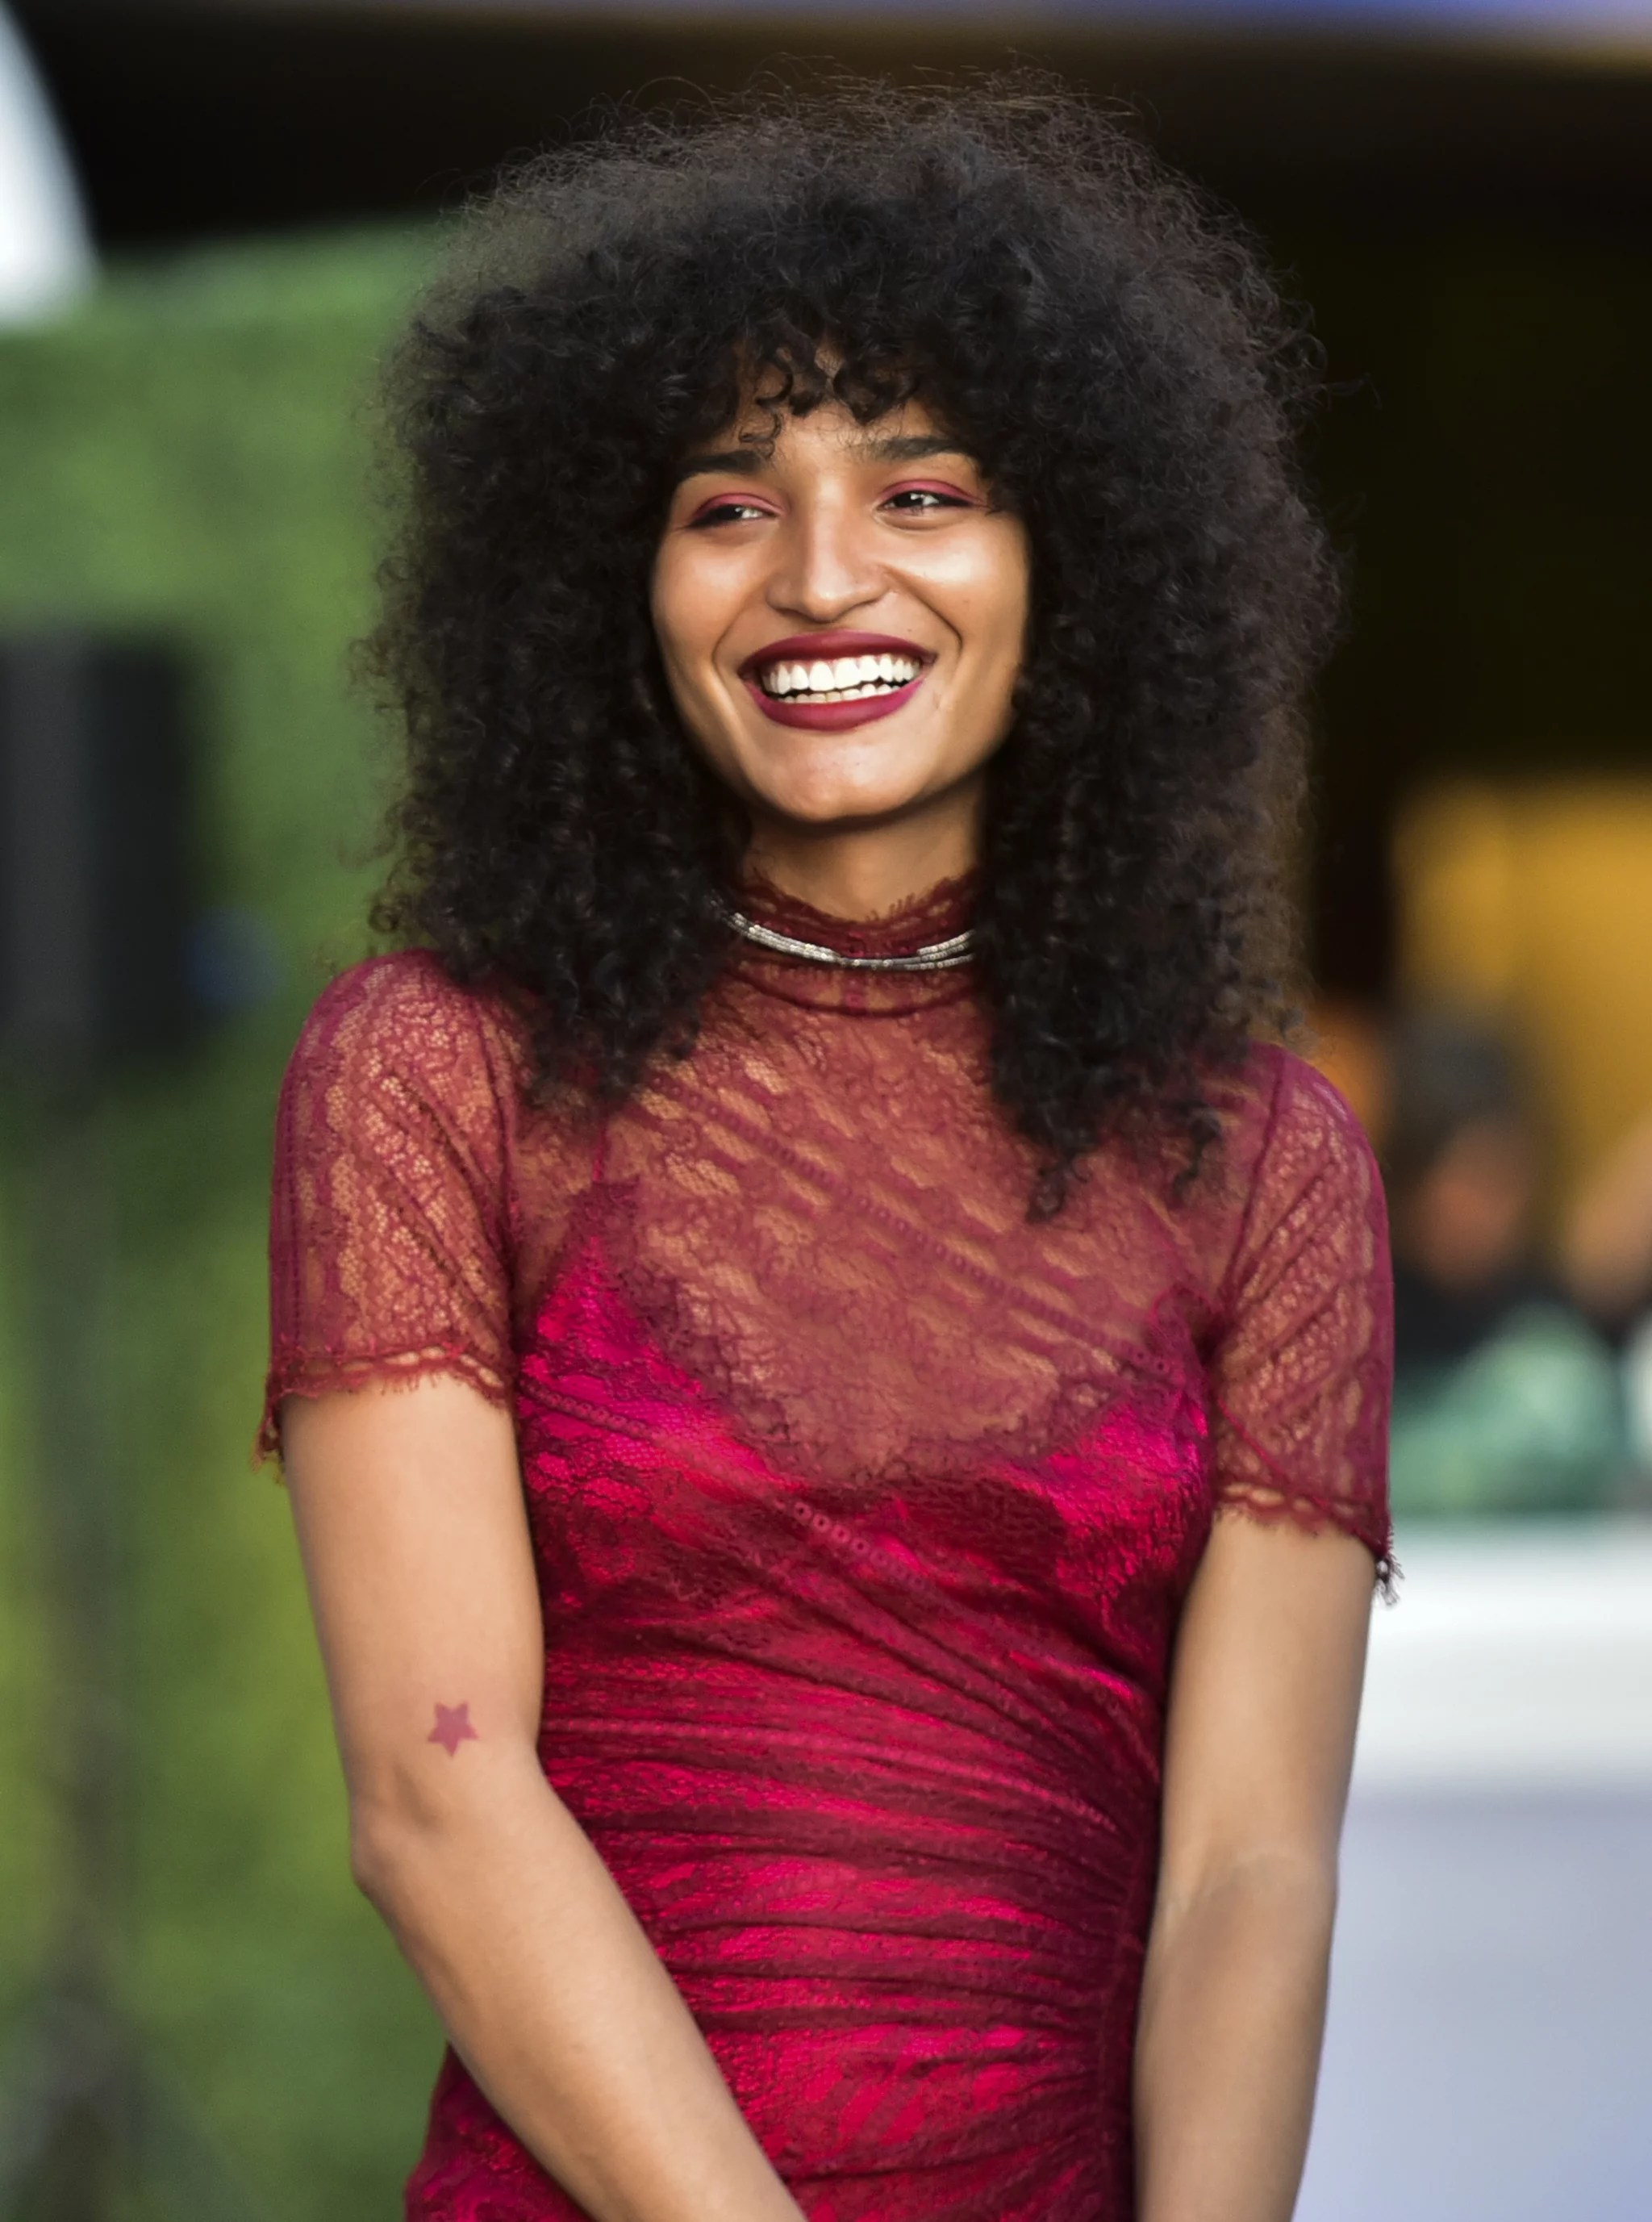 WEST HOLLYWOOD, CALIFORNIA - AUGUST 09: Indya Moore attends the red carpet event for FX's